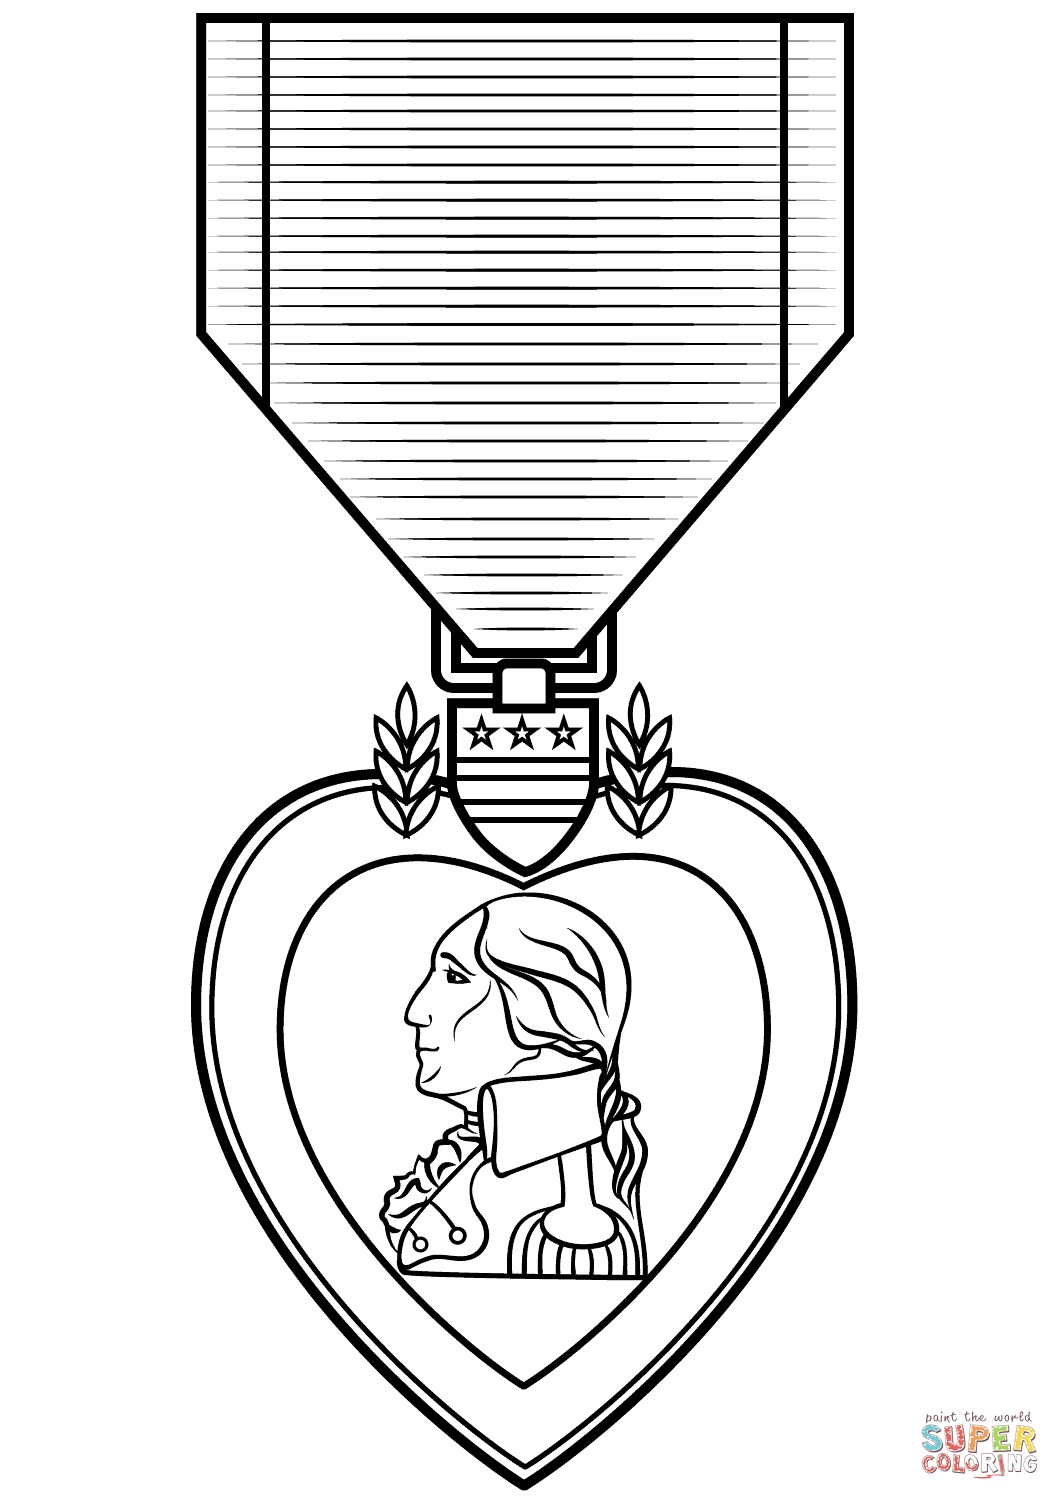 1060x1500 purple heart medal coloring pages beautiful medal drawing free